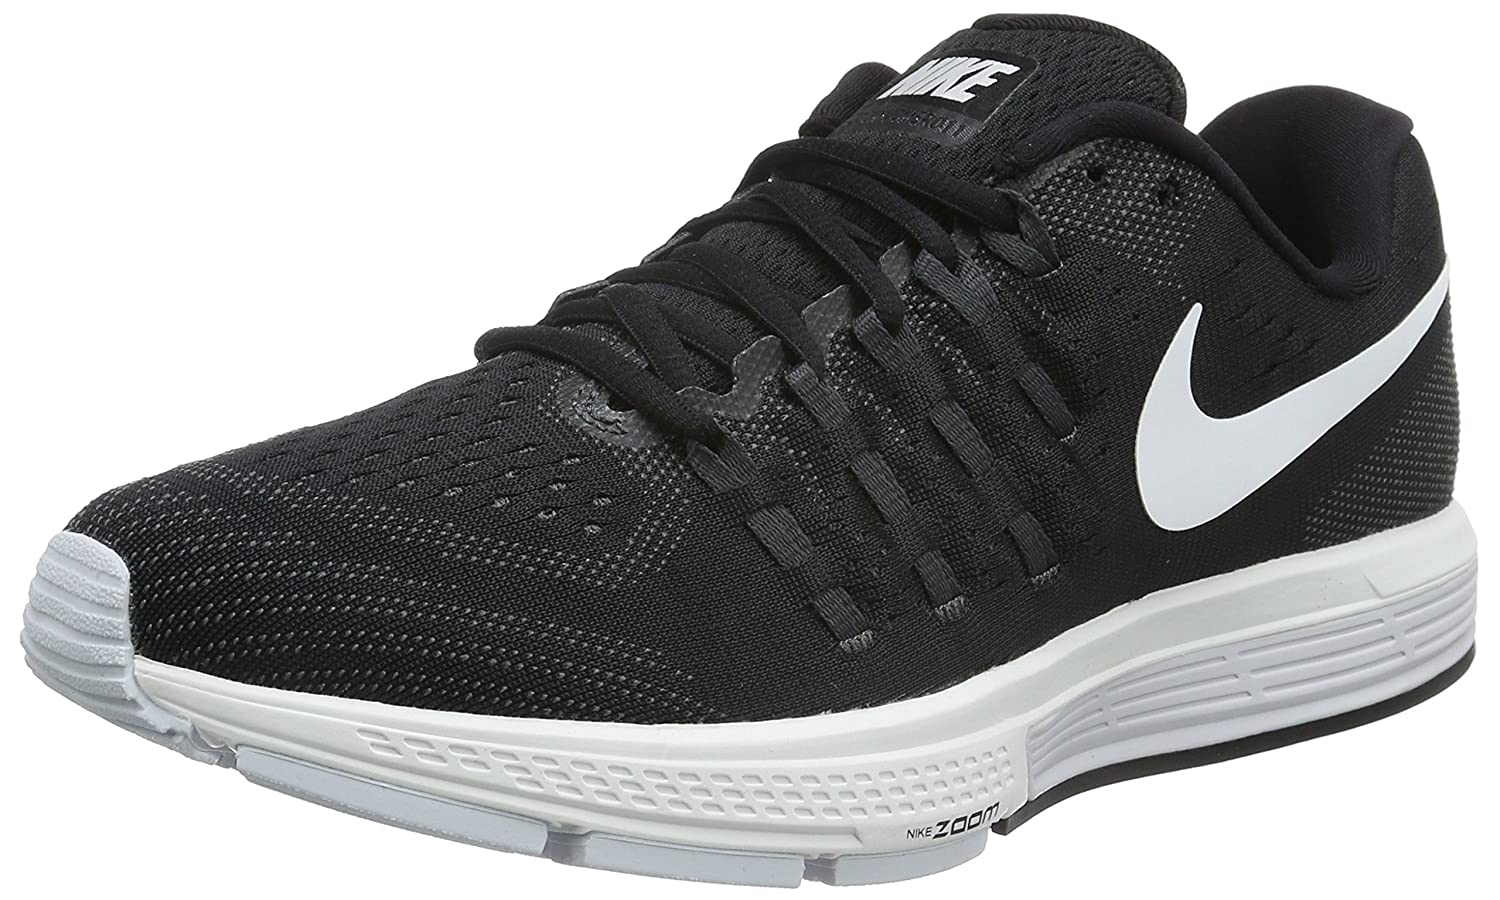 Nike Men's Air Zoom Vomero 11 Running Shoes B01B4FM7UU 13 D(M) US|Black/White/Anthracite